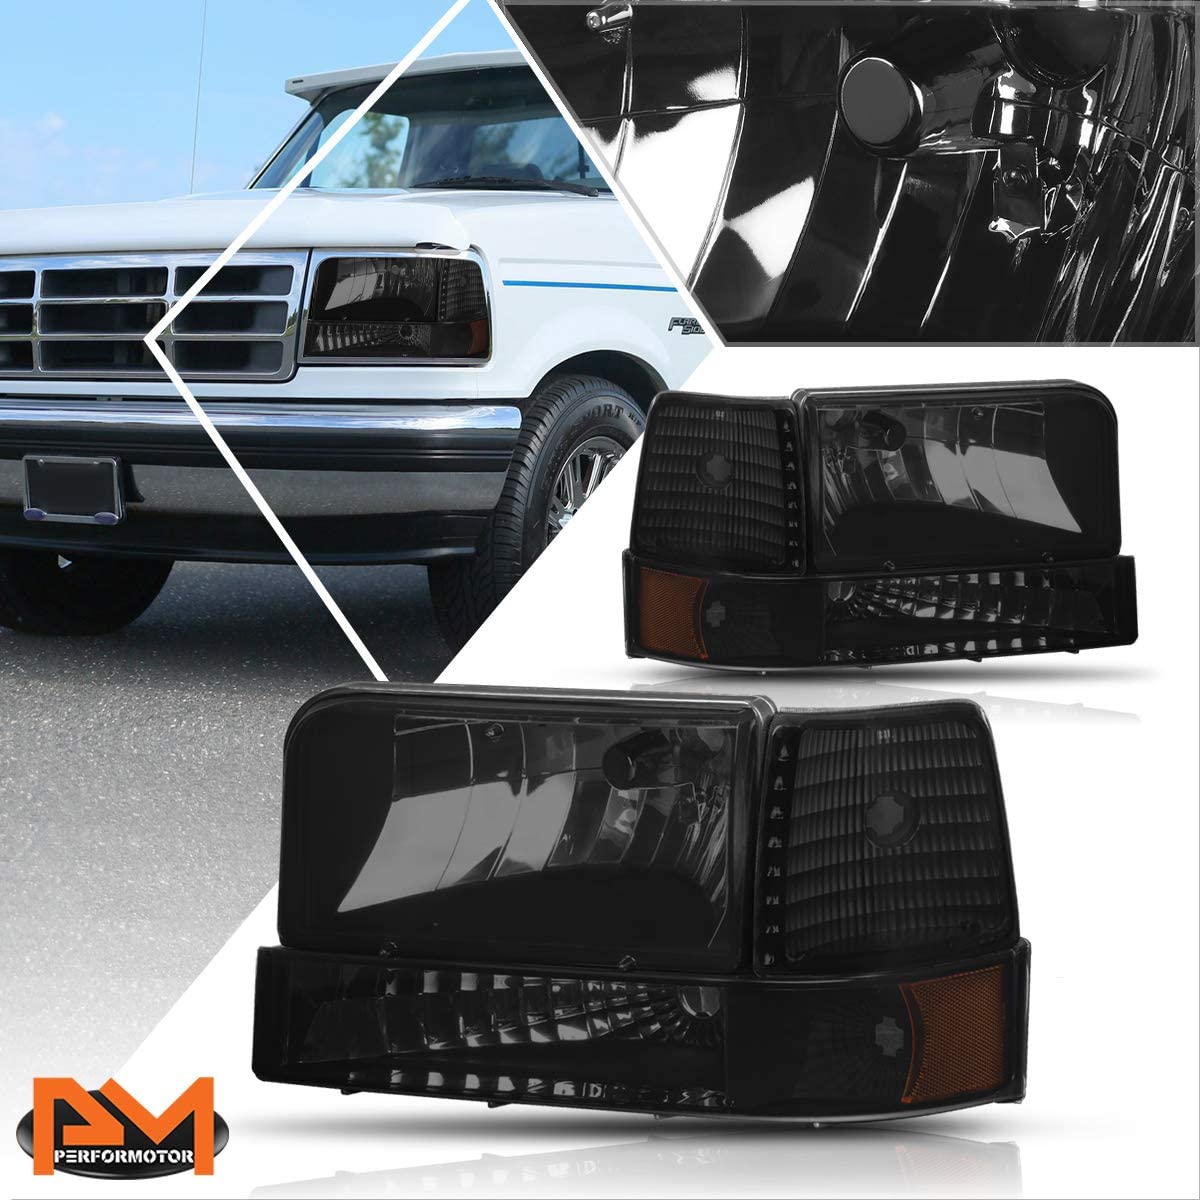 Headlight Miami Mall Assembly Compatible with Ford Hea 92-96 F150 Max 84% OFF F250 F350